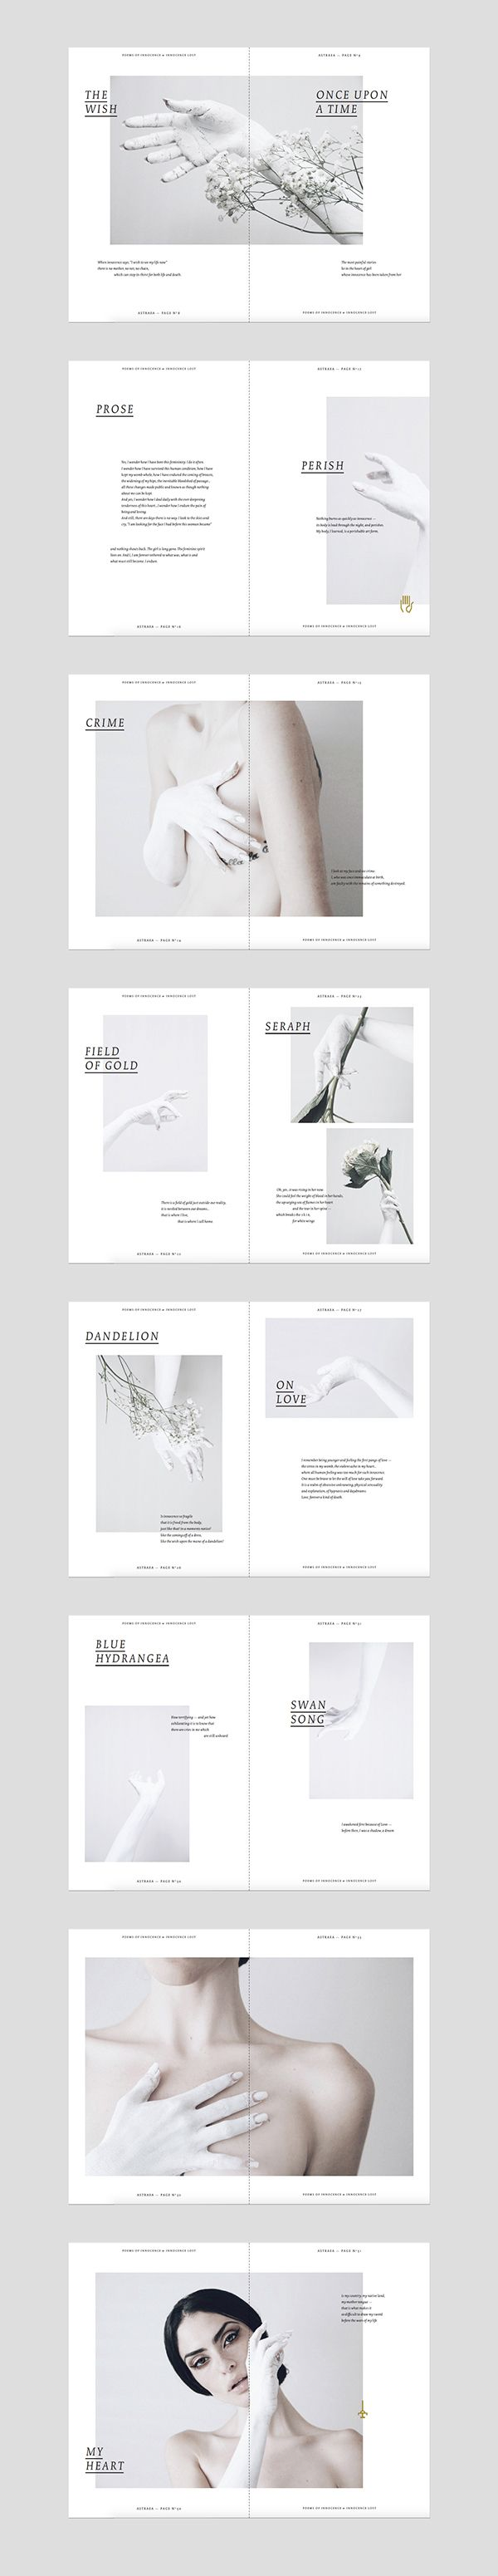 pure white minimal Editorial Design | typography / graphic design: ASTRAEA / Laura Pol |